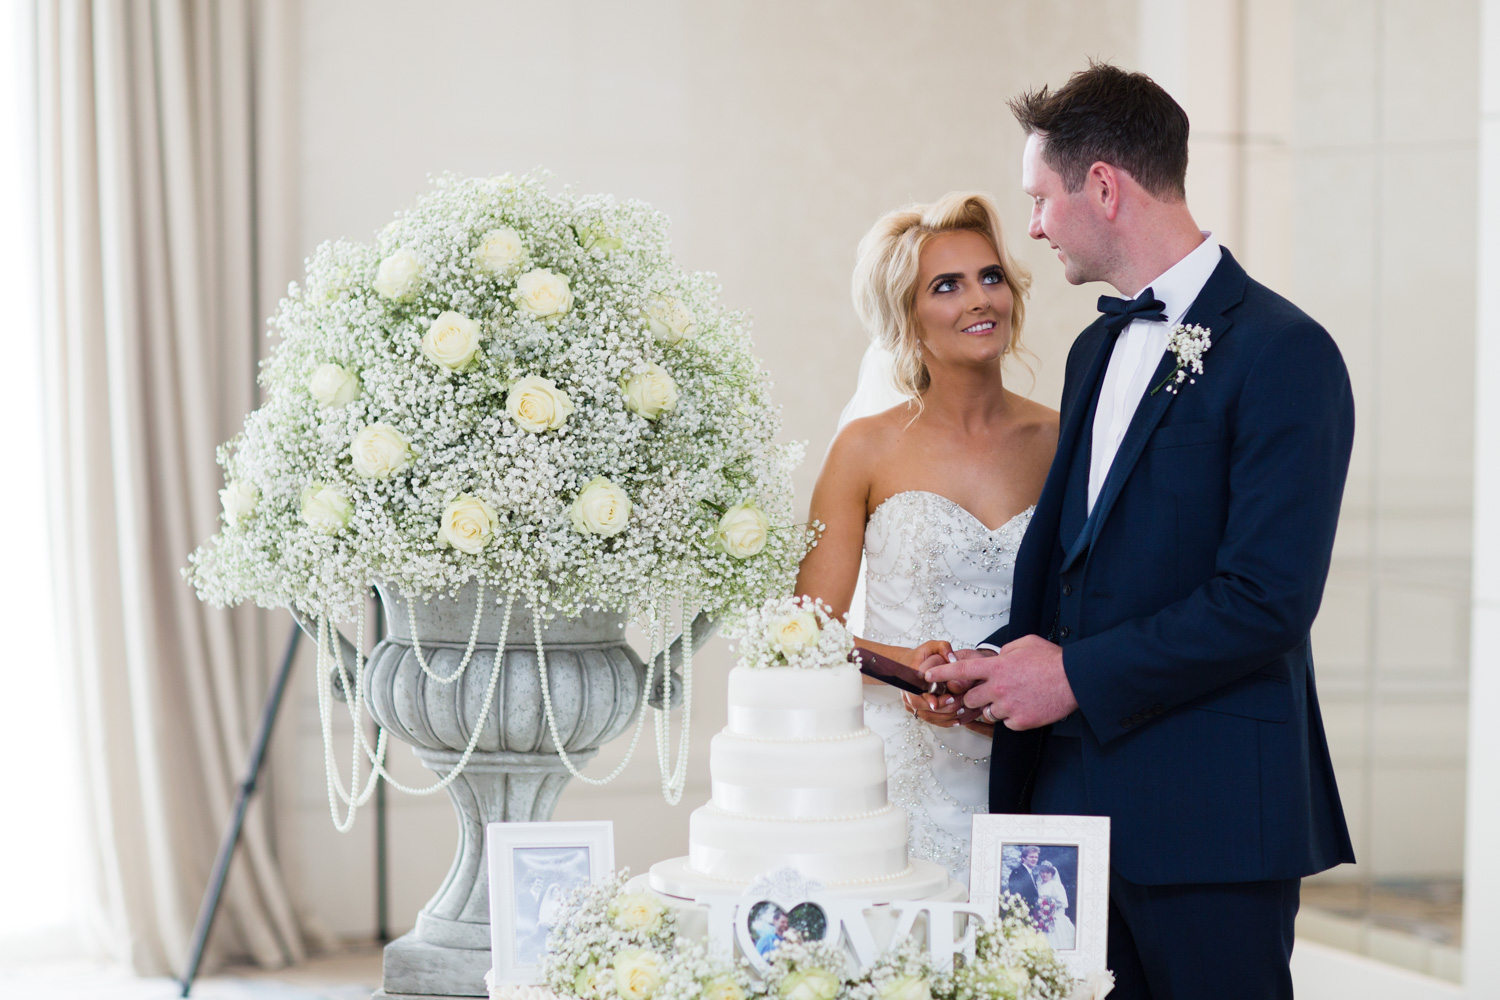 Mark_Barnes_wedding_photographer_Northern_Ireland_Wedding_photography_Carlingford_Four_Seasons_Wedding-43.jpg